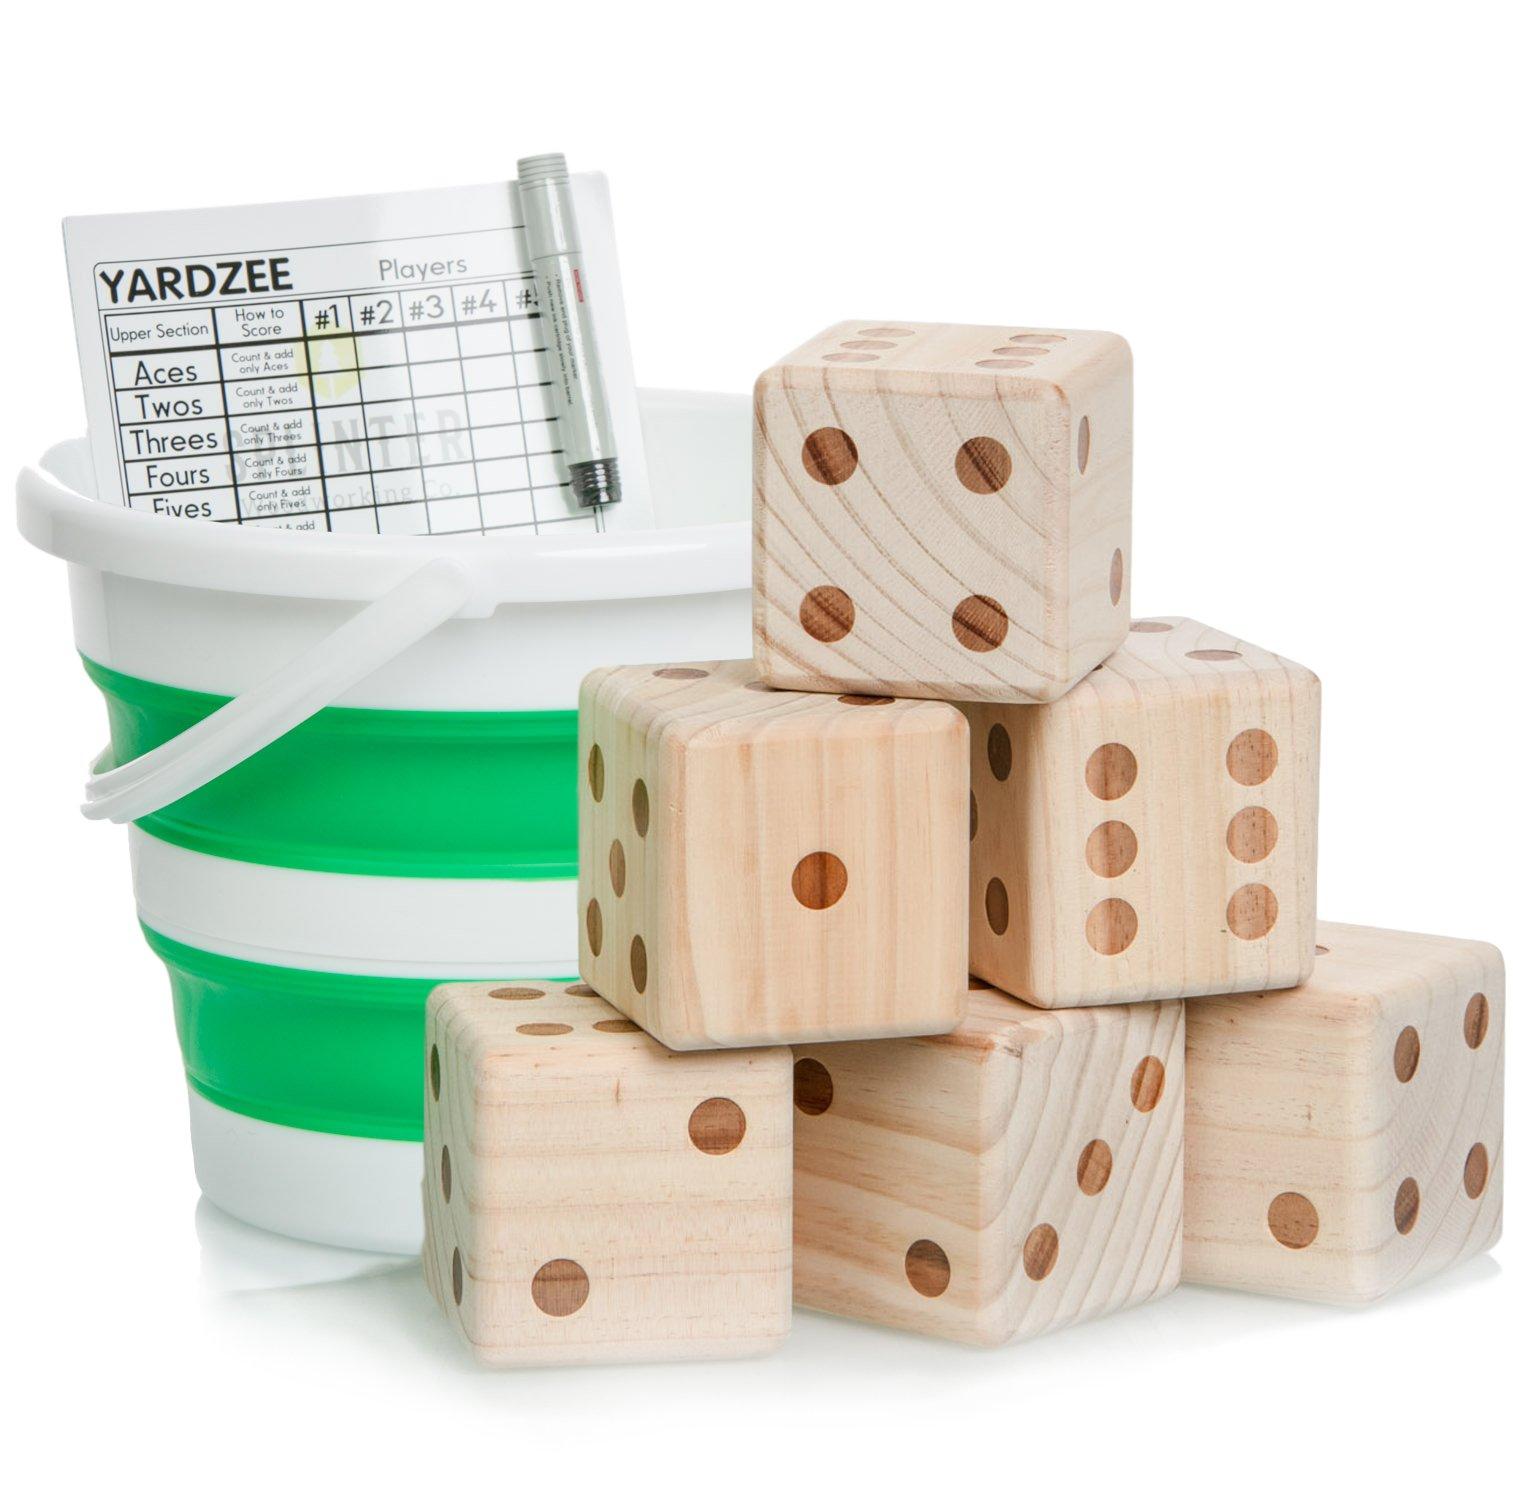 Yardzee & Yardkle Giant Yard Dice Set (6 Dice) with Collapsible Bucket, Big Laminated Score Cards, & Dry Erase Marker | Backyard Lawn Game for Kids, Adults, & Family | Indoor & Outdoor